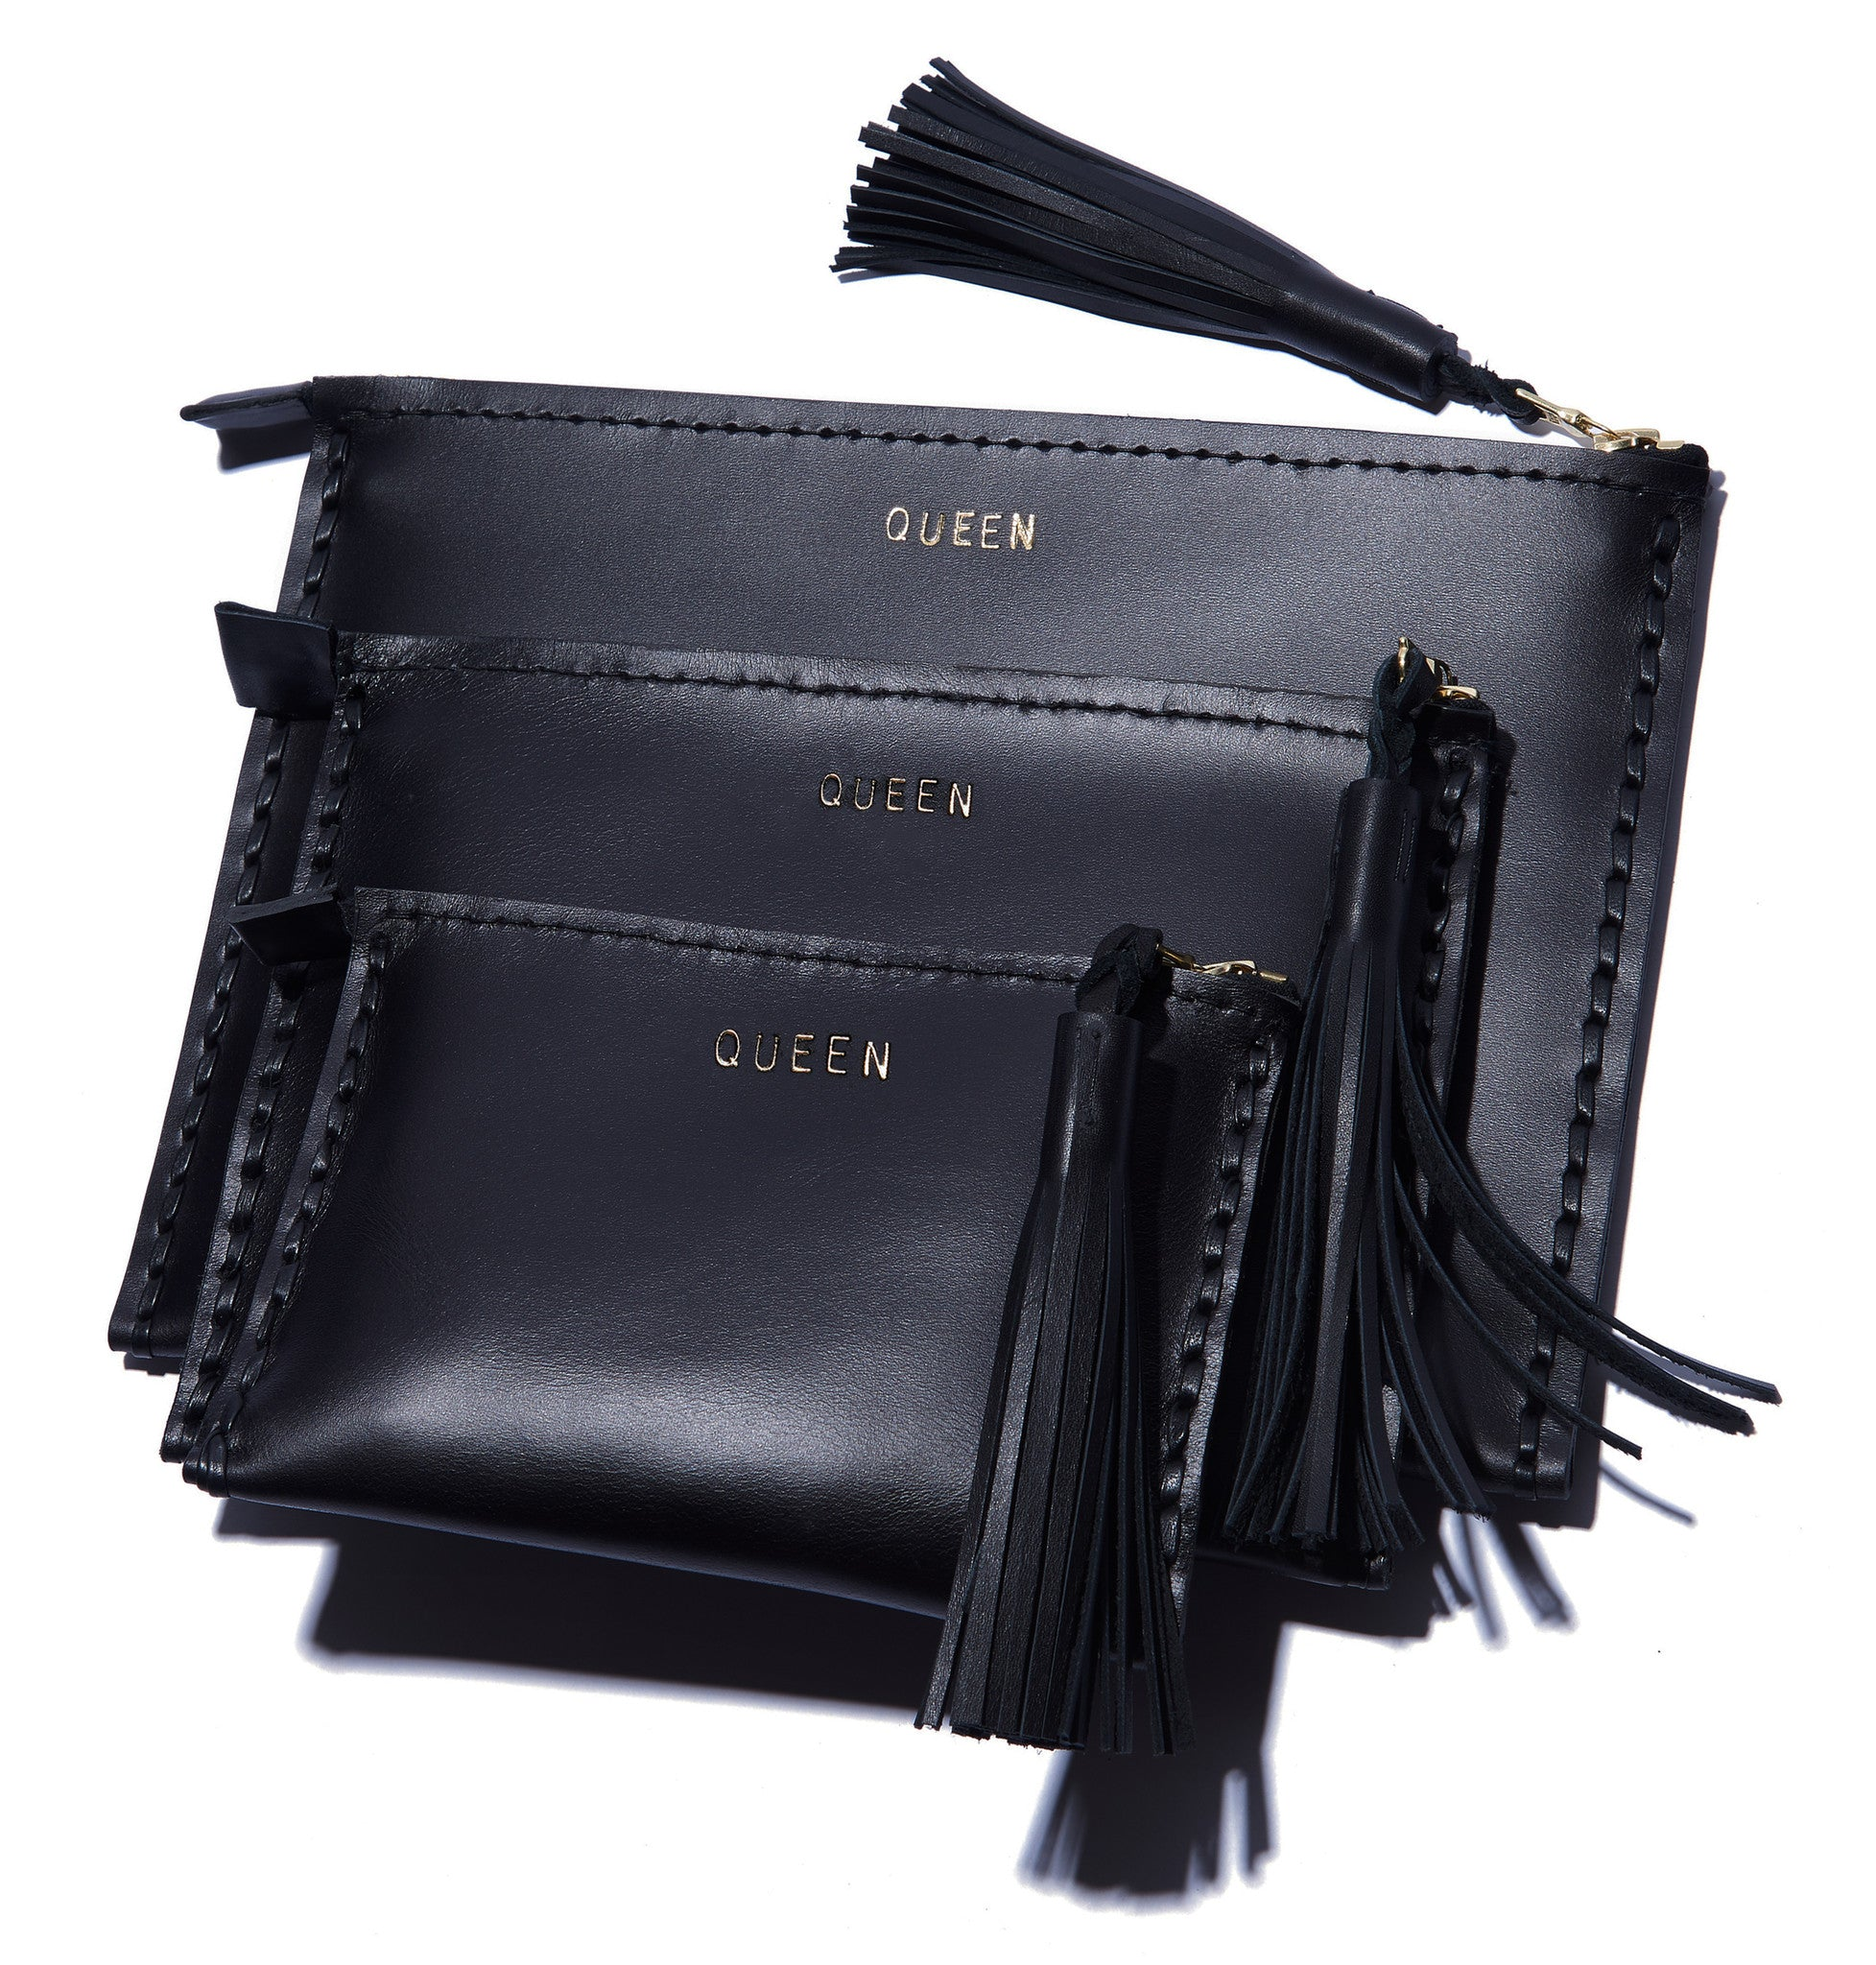 Embossed QUEEN Laced Leather Clutch Pouch Wendy Nichol Luxury Handbags Bag Purse Designer Handmade in NYC New York City Zip Zipper Pouch Wallet Fringe Tassel Embossed Gold Silver Foil Small Medium Large Size Smooth High Quality Black Leather YAS QUEEN CLUTCH